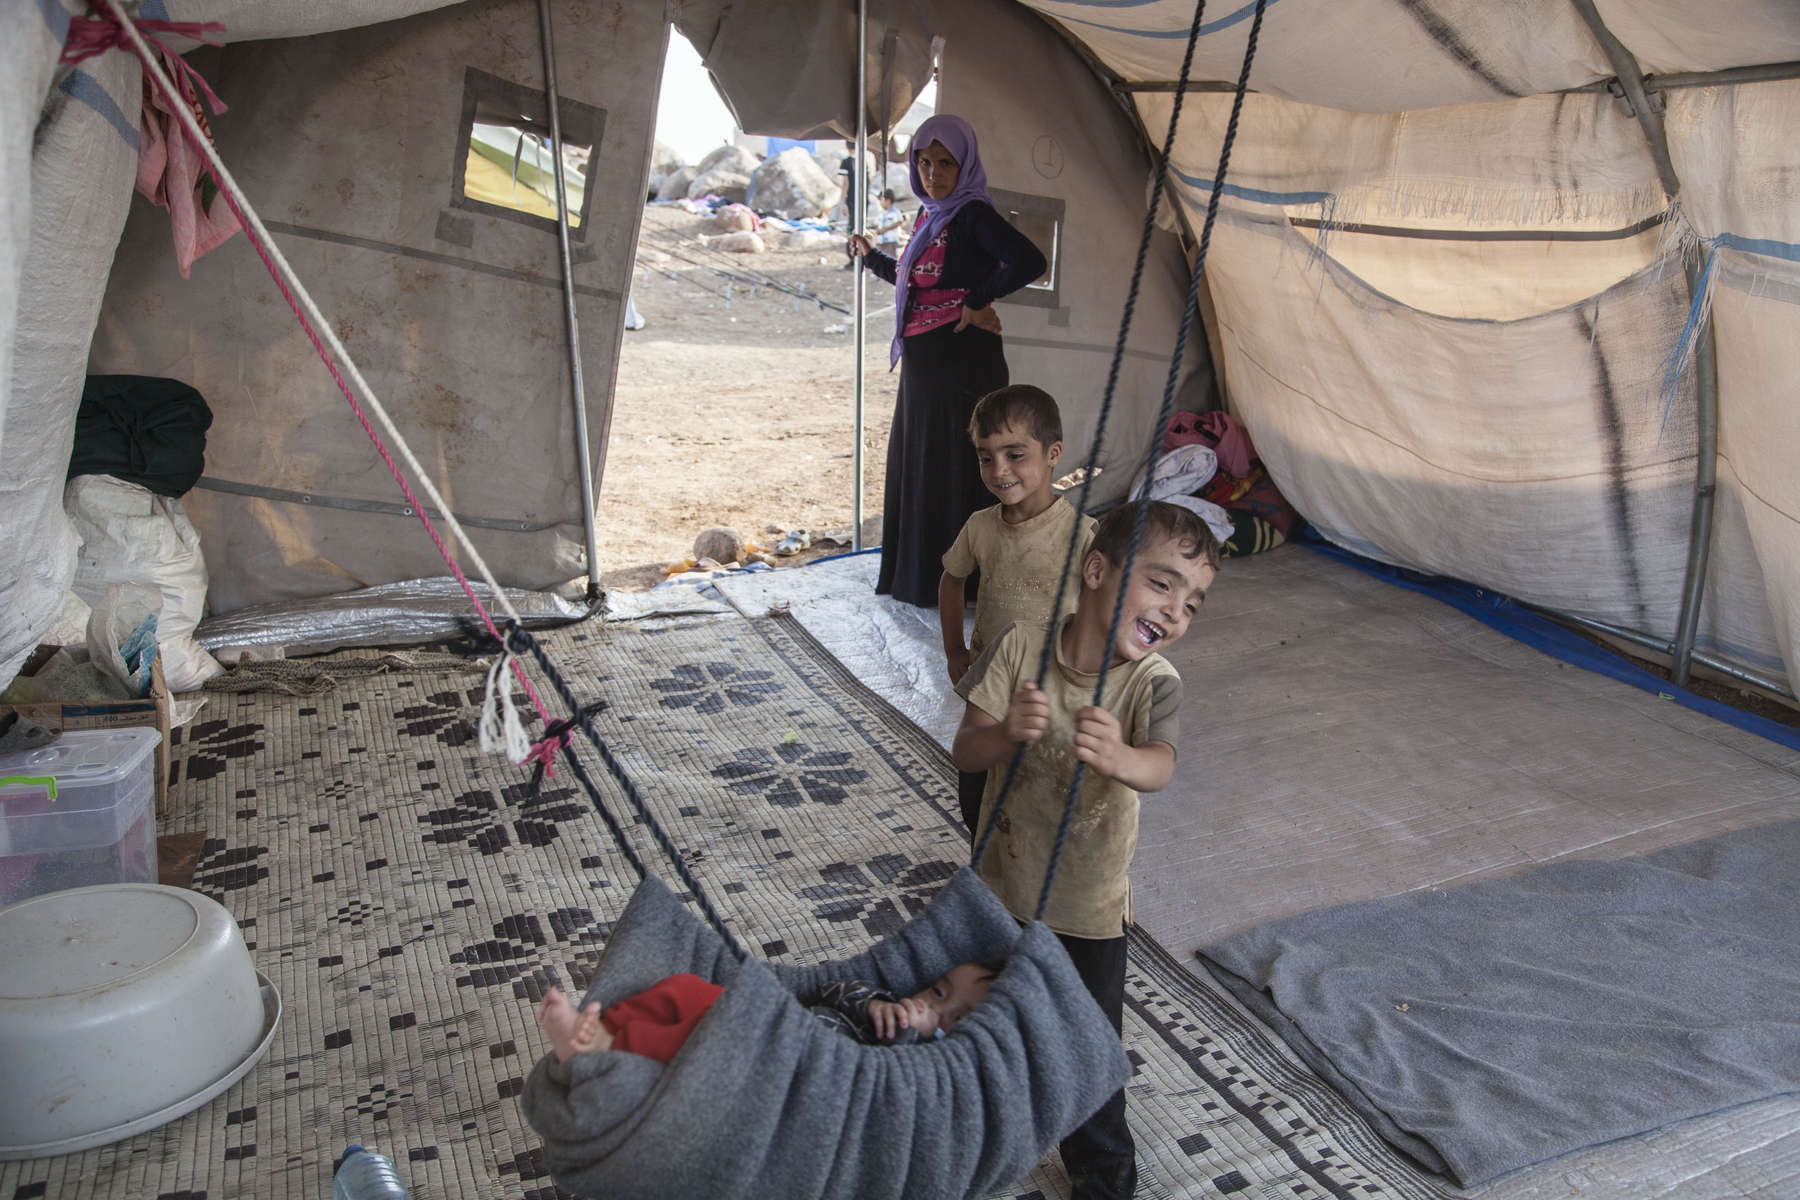 13/08/2014 -- Newroz Camp, Dirk, Syria -- Shero 8 y.o. plays with his brother inside their tent at Newroz camp. They were stranded on Sinjar mountain for six days and had reached the camp on the 11th of August.